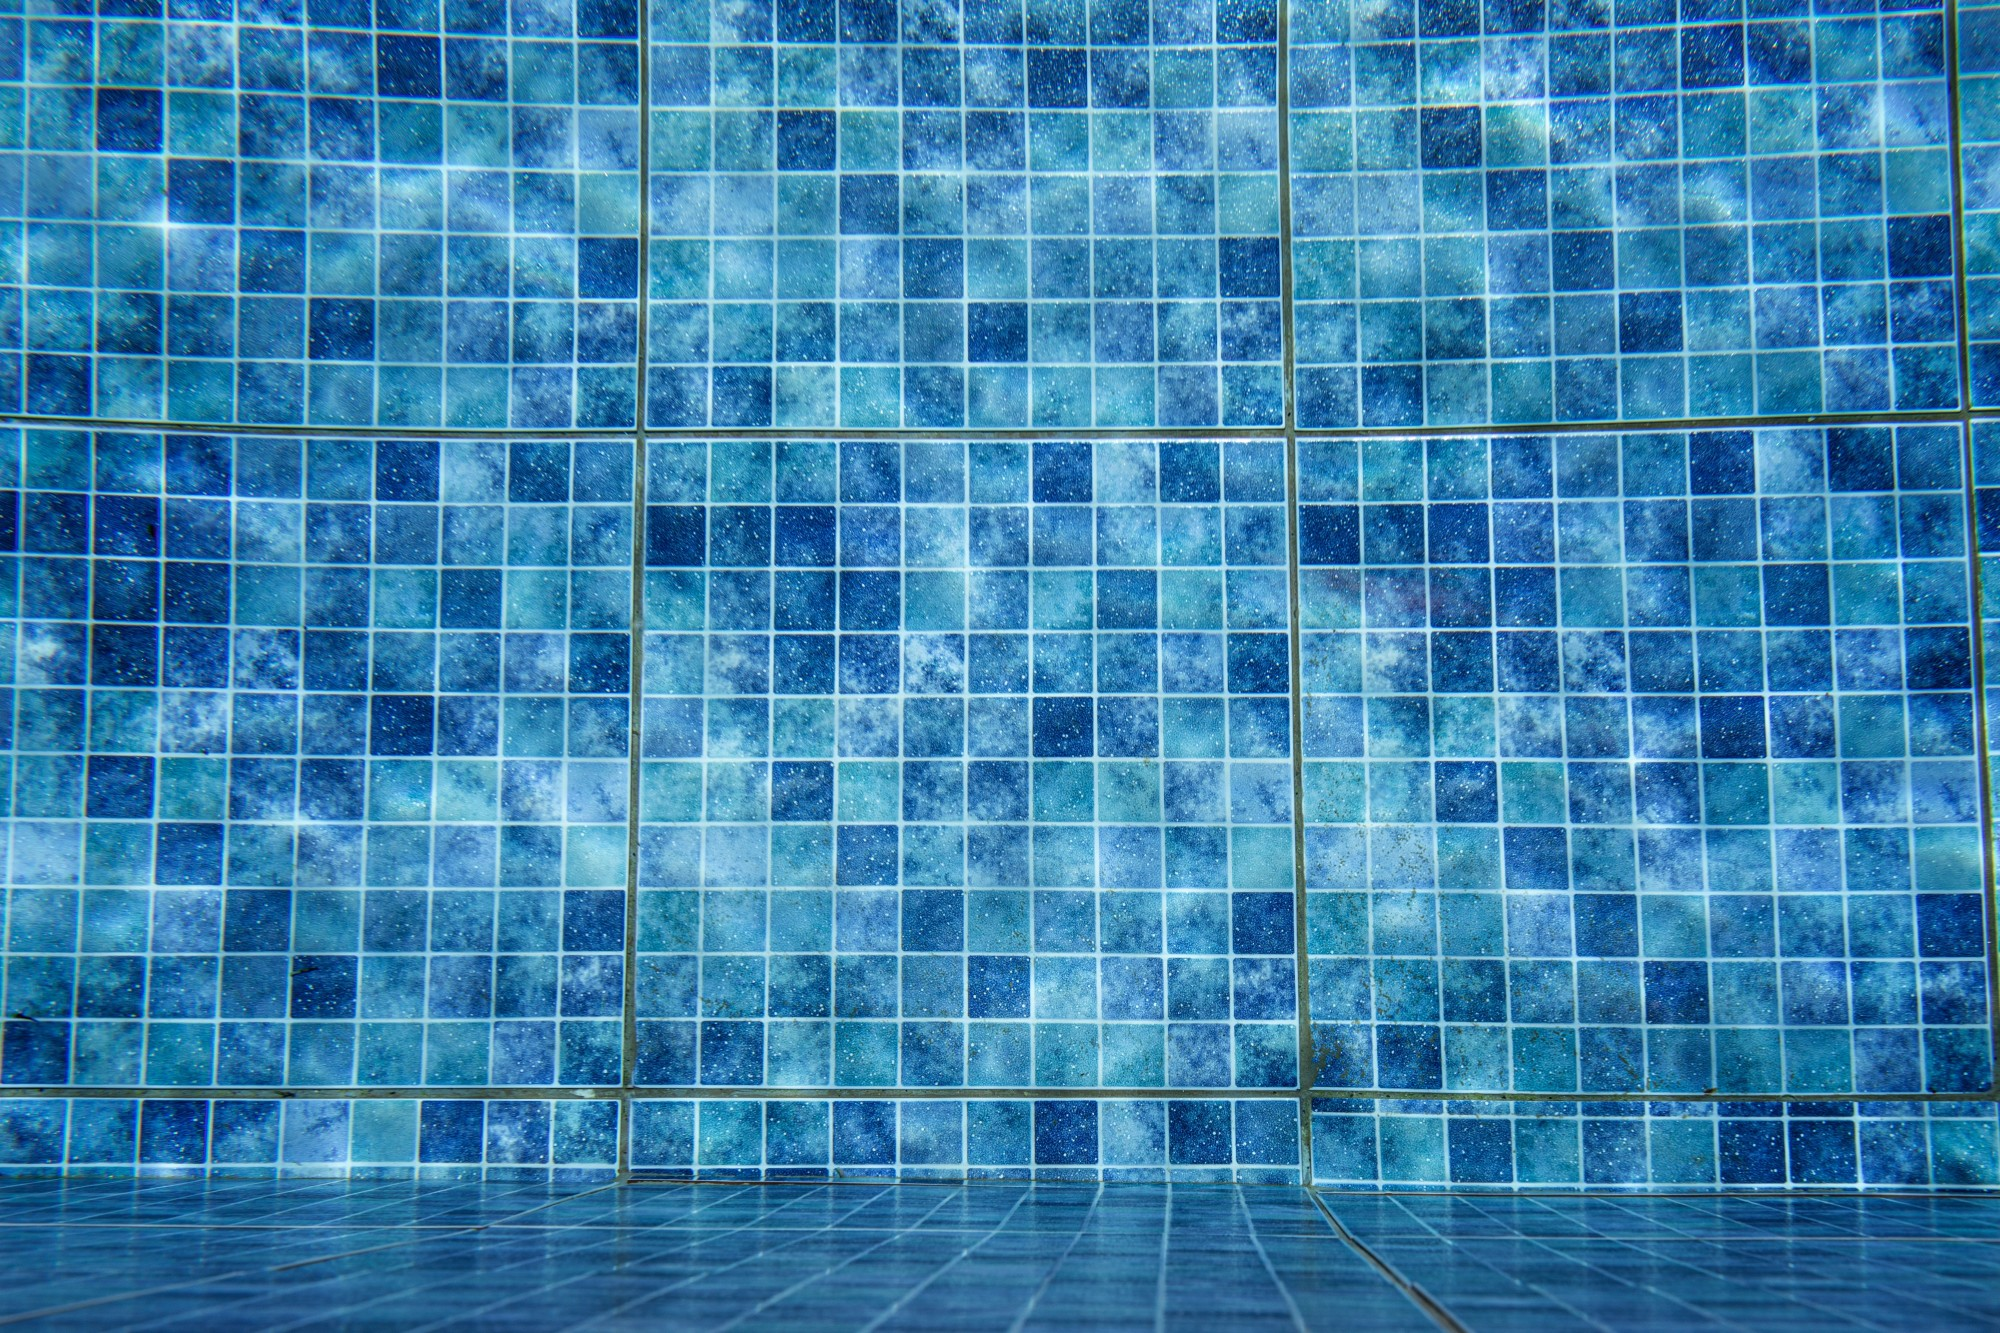 Deciding Between an Inground Swimming Pool vs. Above Ground